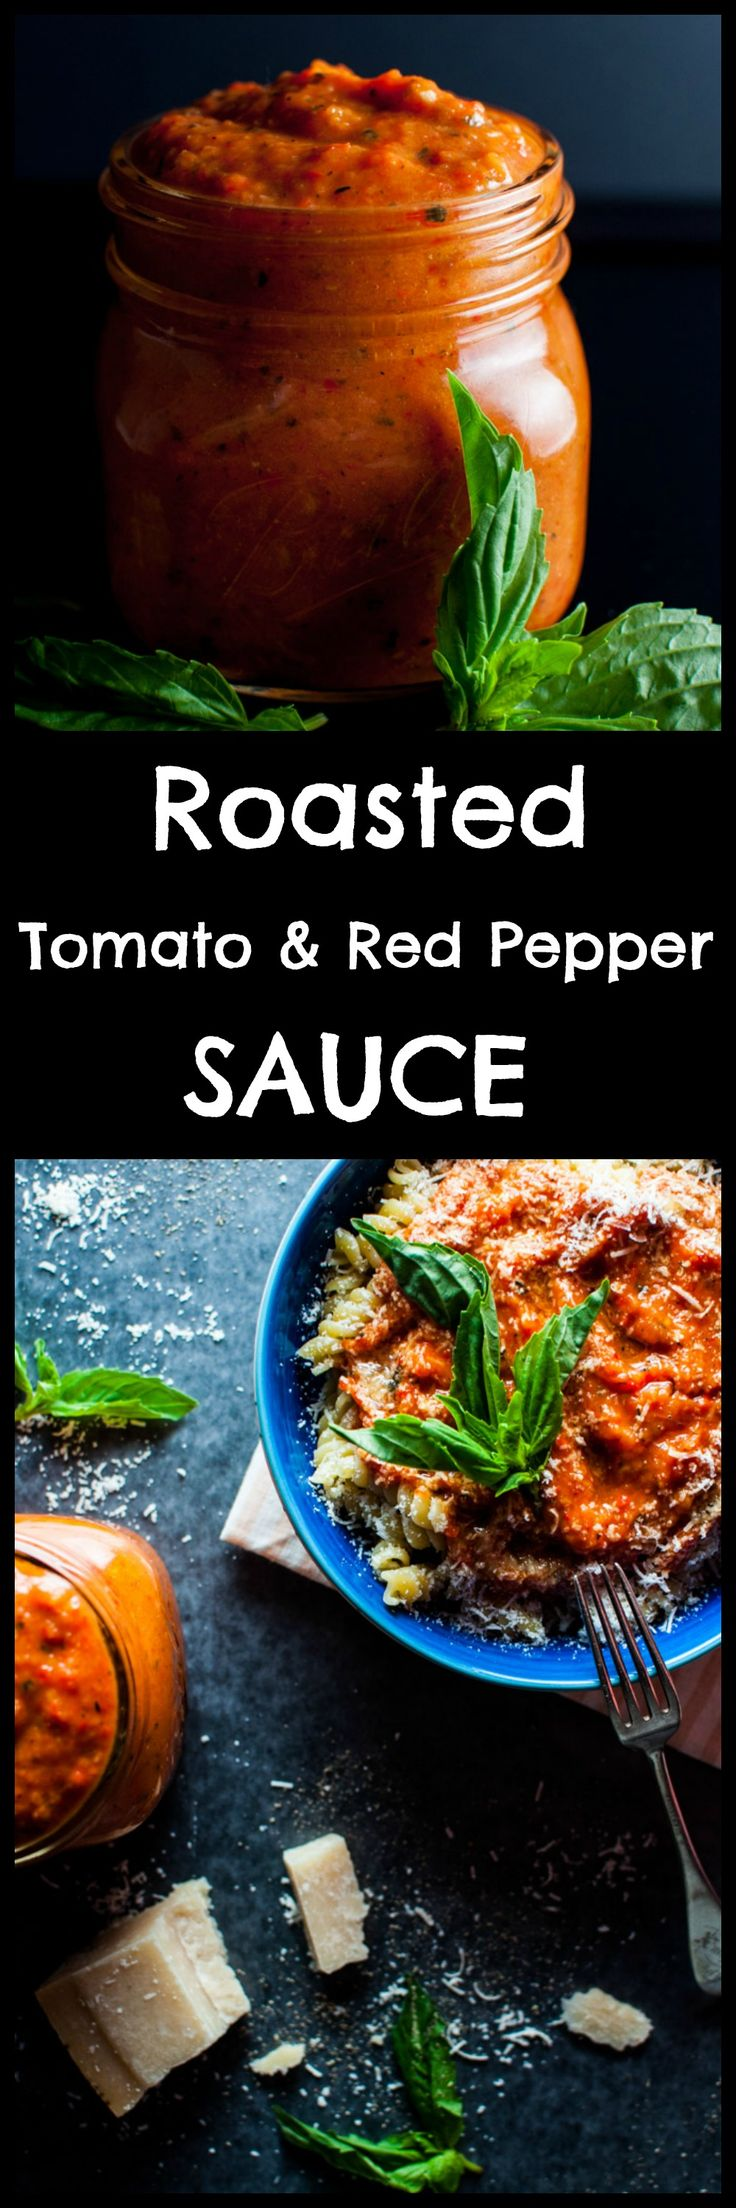 Roasted tomato and red pepper sauce – a versatile sauce that is simple to make, super flavorful, and can be used on pasta, pizza, or anywhere a tomato-based sauce is needed. Pin for later :)